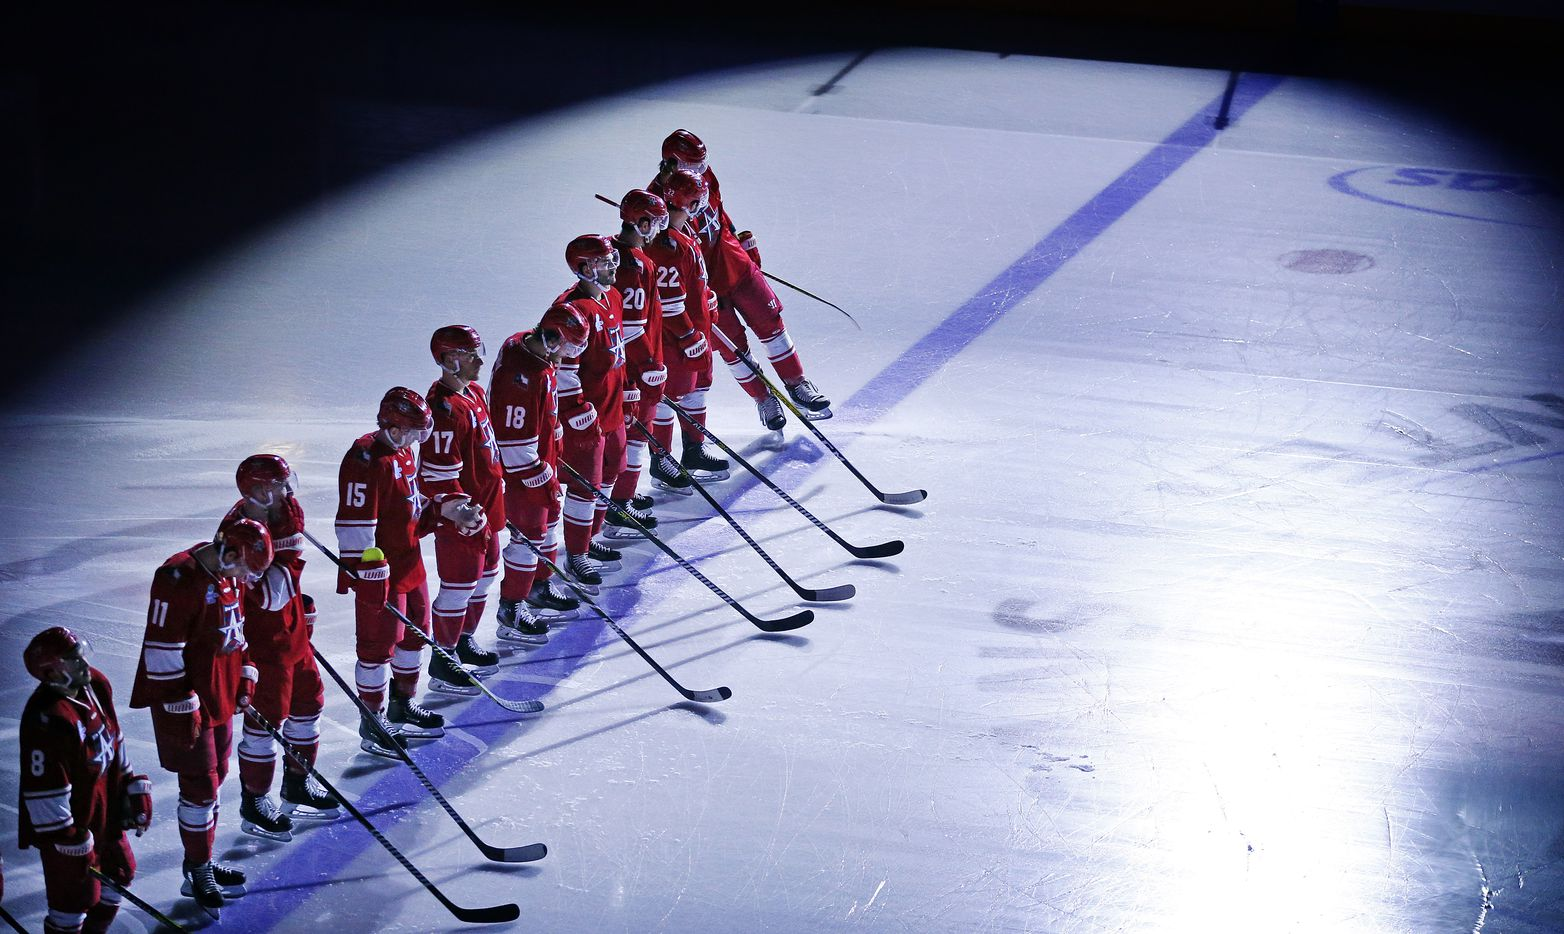 The Allen Americans hockey players are introduced to fans during their season opening game against Rapid City Rush at the Allen Event Center in Allen, Texas, Friday, December 18, 2020. This is the first professional hockey game in the metroplex since March. (Tom Fox/The Dallas Morning News)